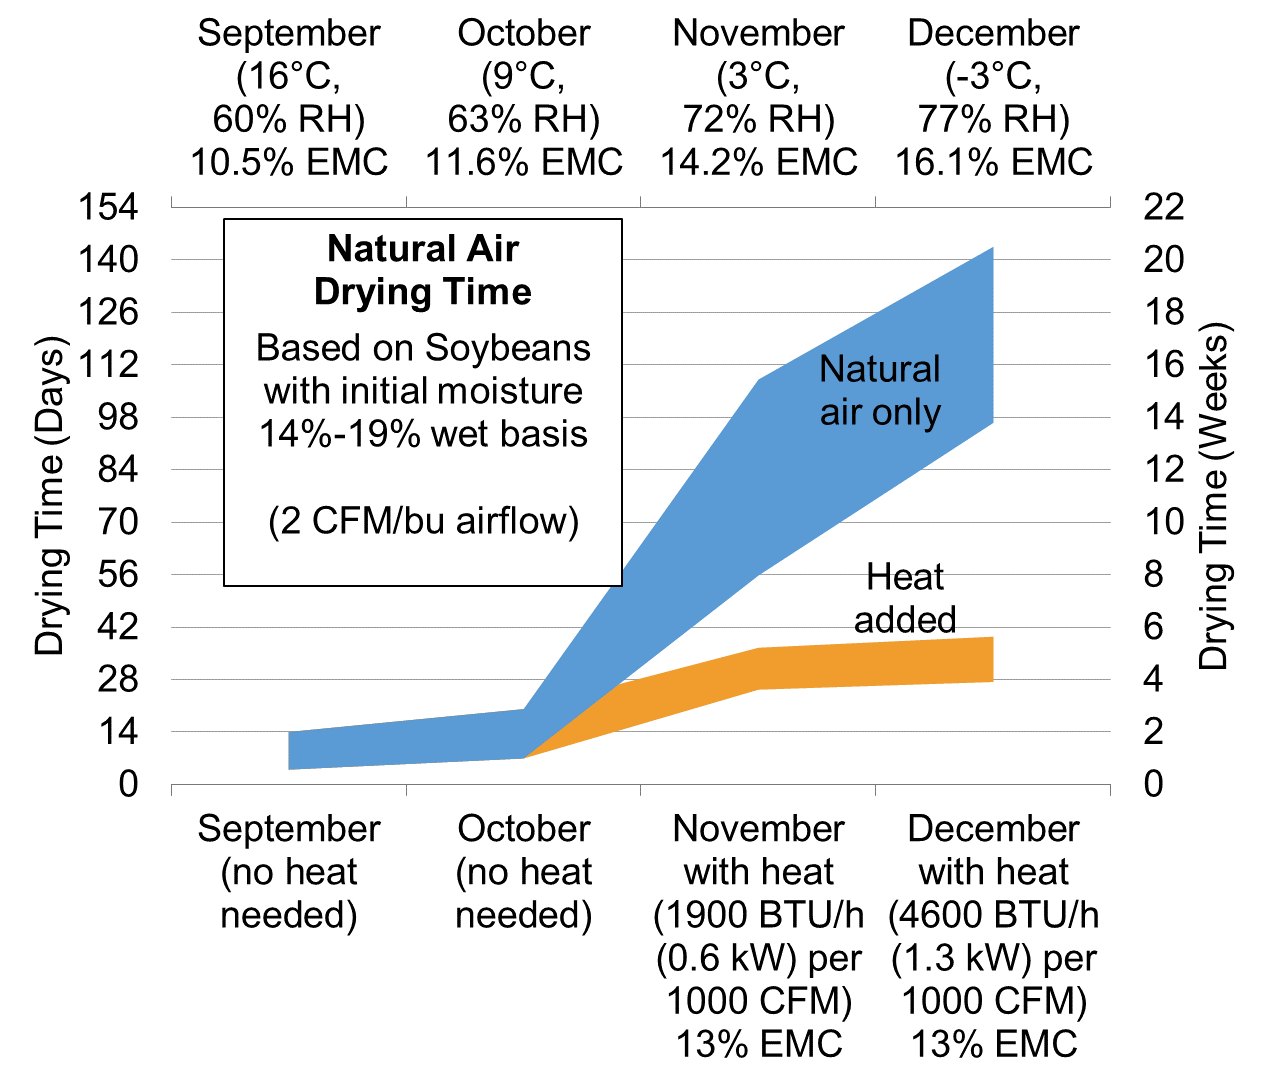 Figure 2: Estimated time for natural air drying of soybeans, with and without additional heat added. EMC values indicate the final grain moisture after drying. Temperature and Relative Humidity (RH) are based on 30-year average data from London, Ontario.